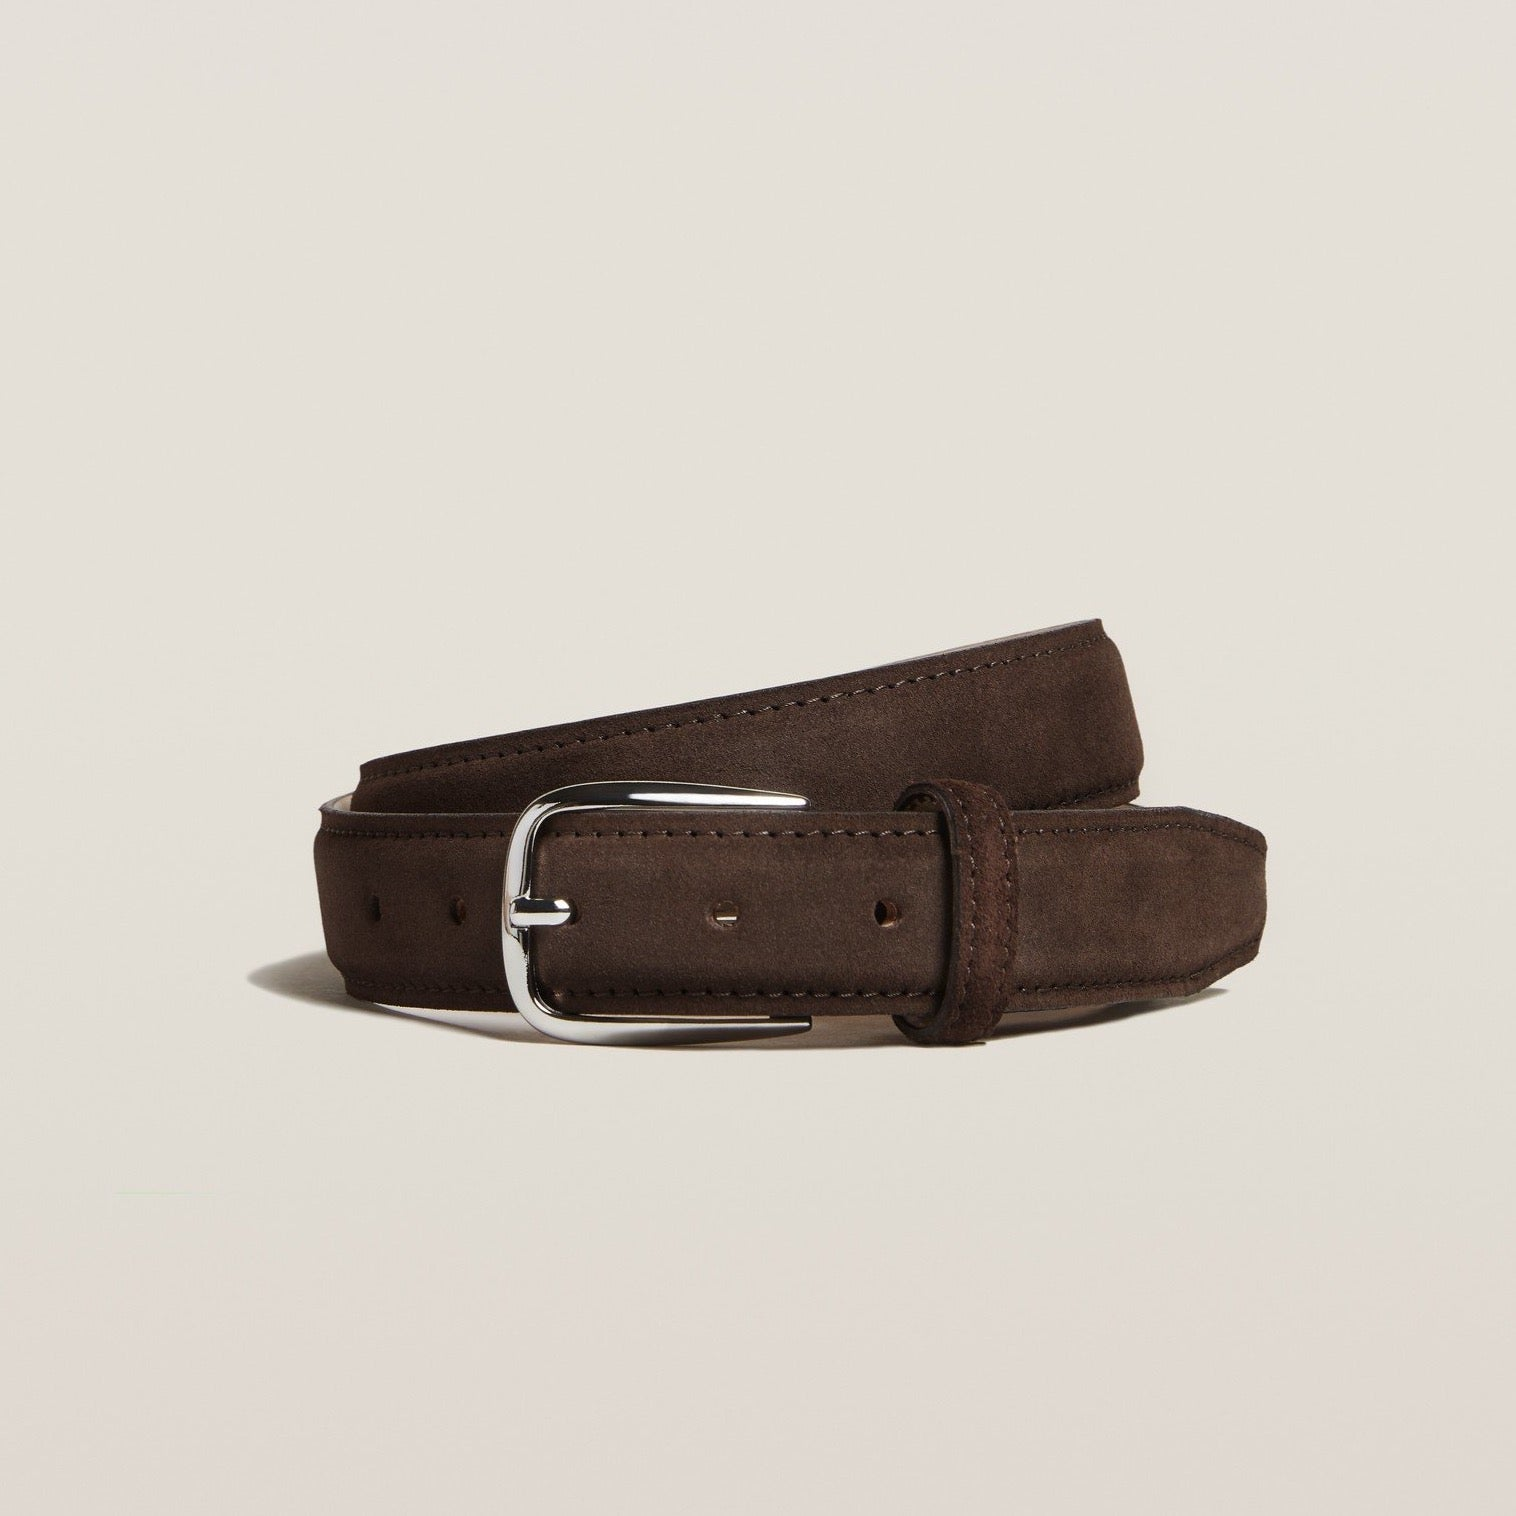 Belt - Dark Brown Suede